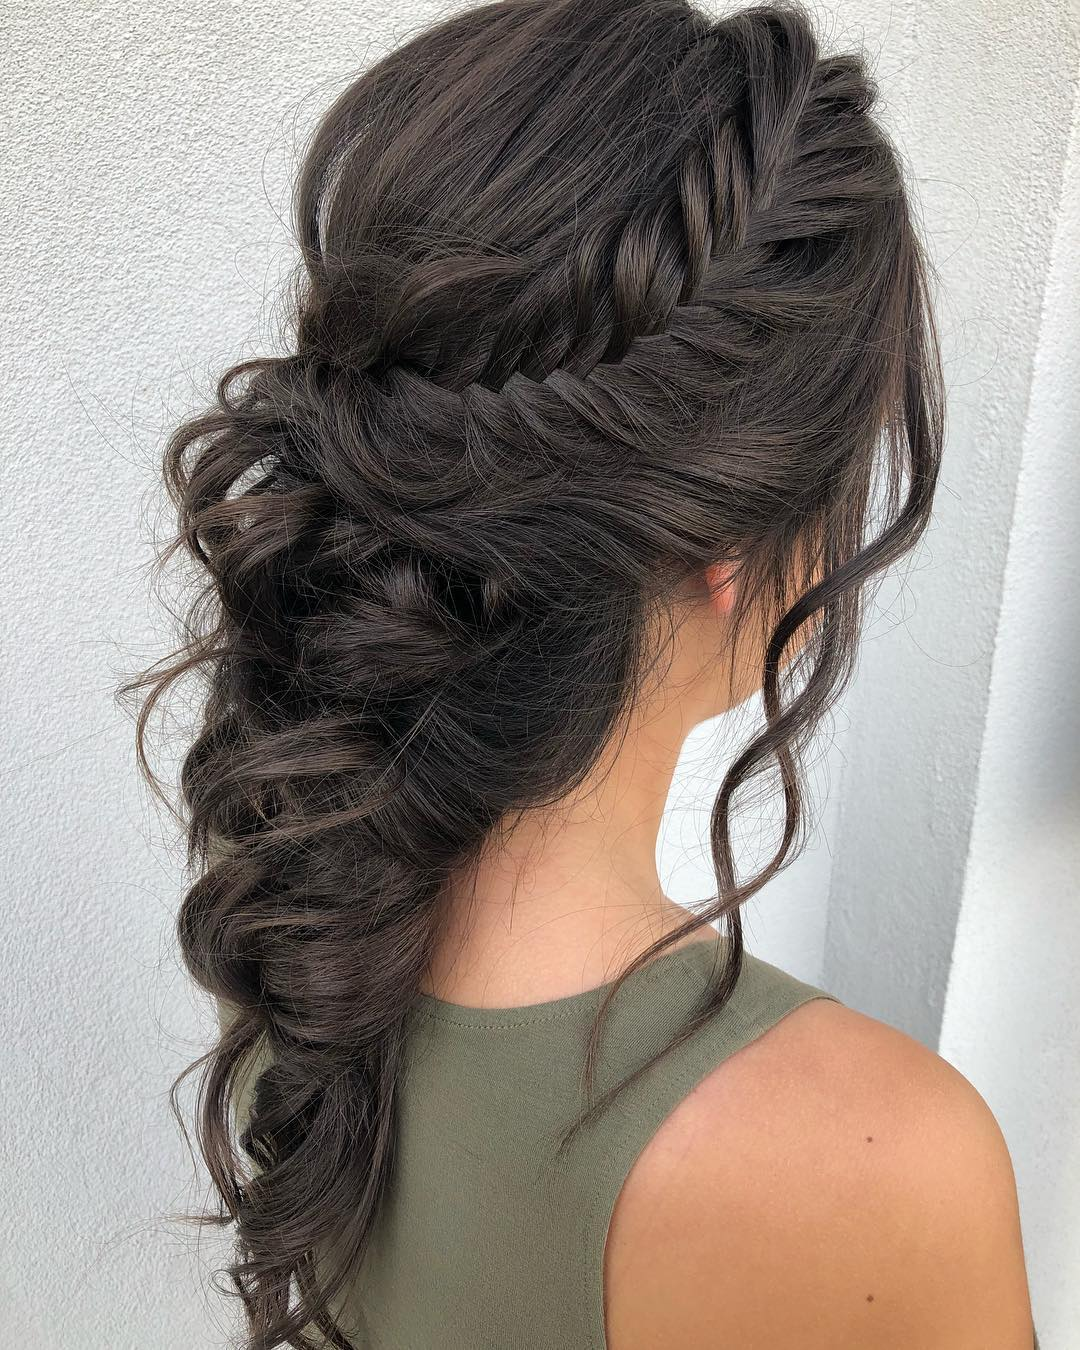 Wedding Hair Style Video: 9 Wedding Hair Trends For 2019